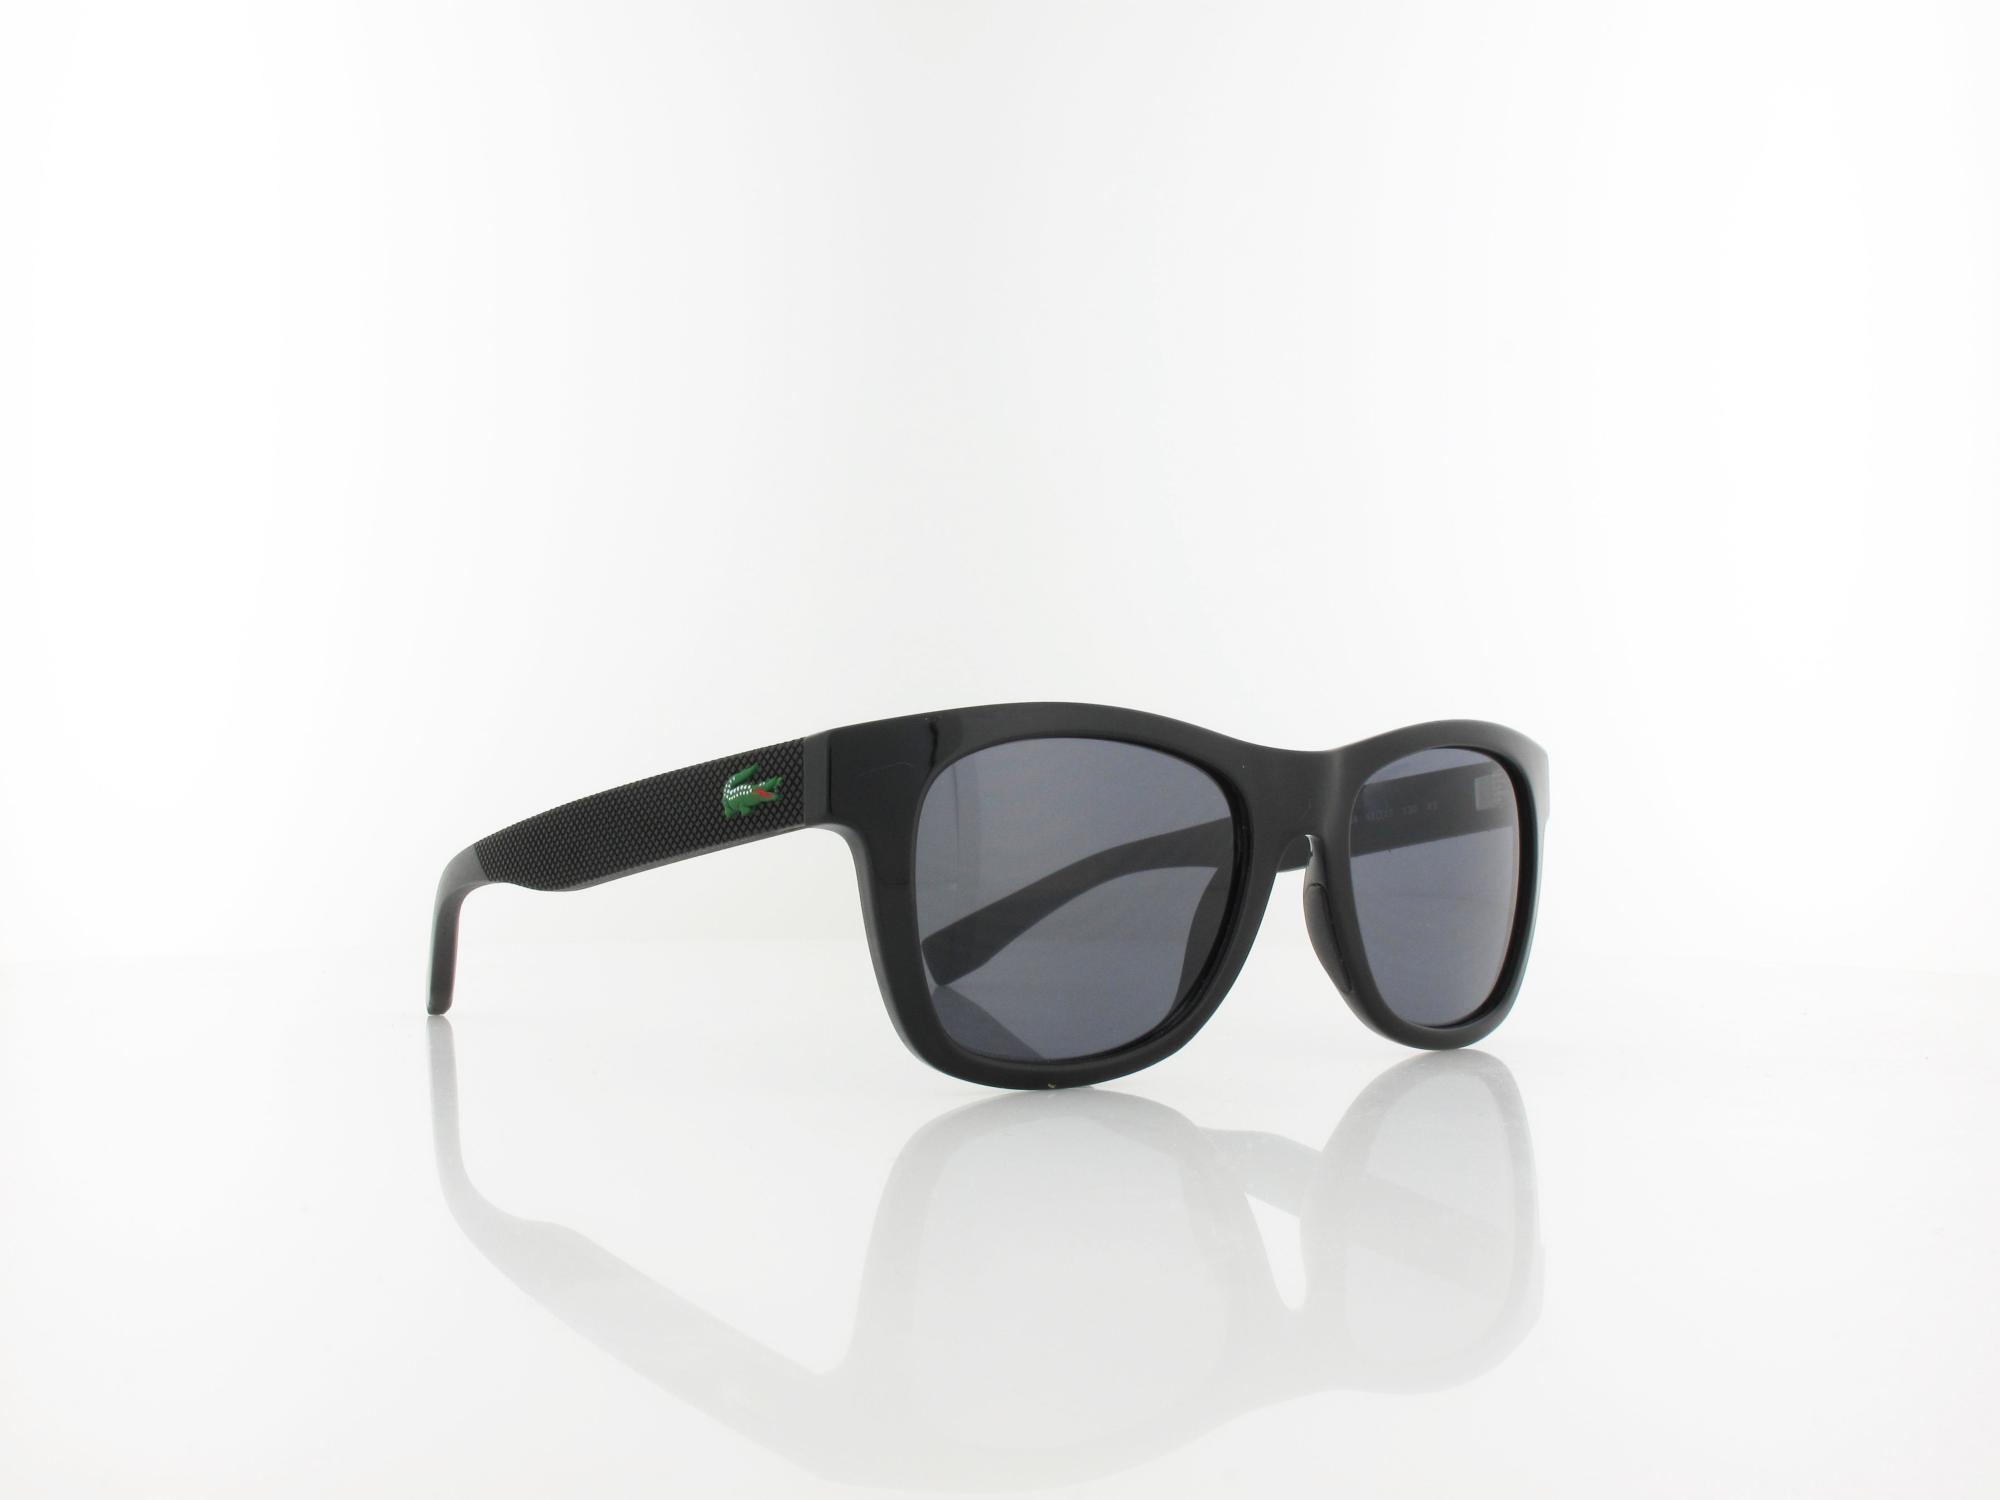 Lacoste | L3617S 004 48 | matte black / dark grey